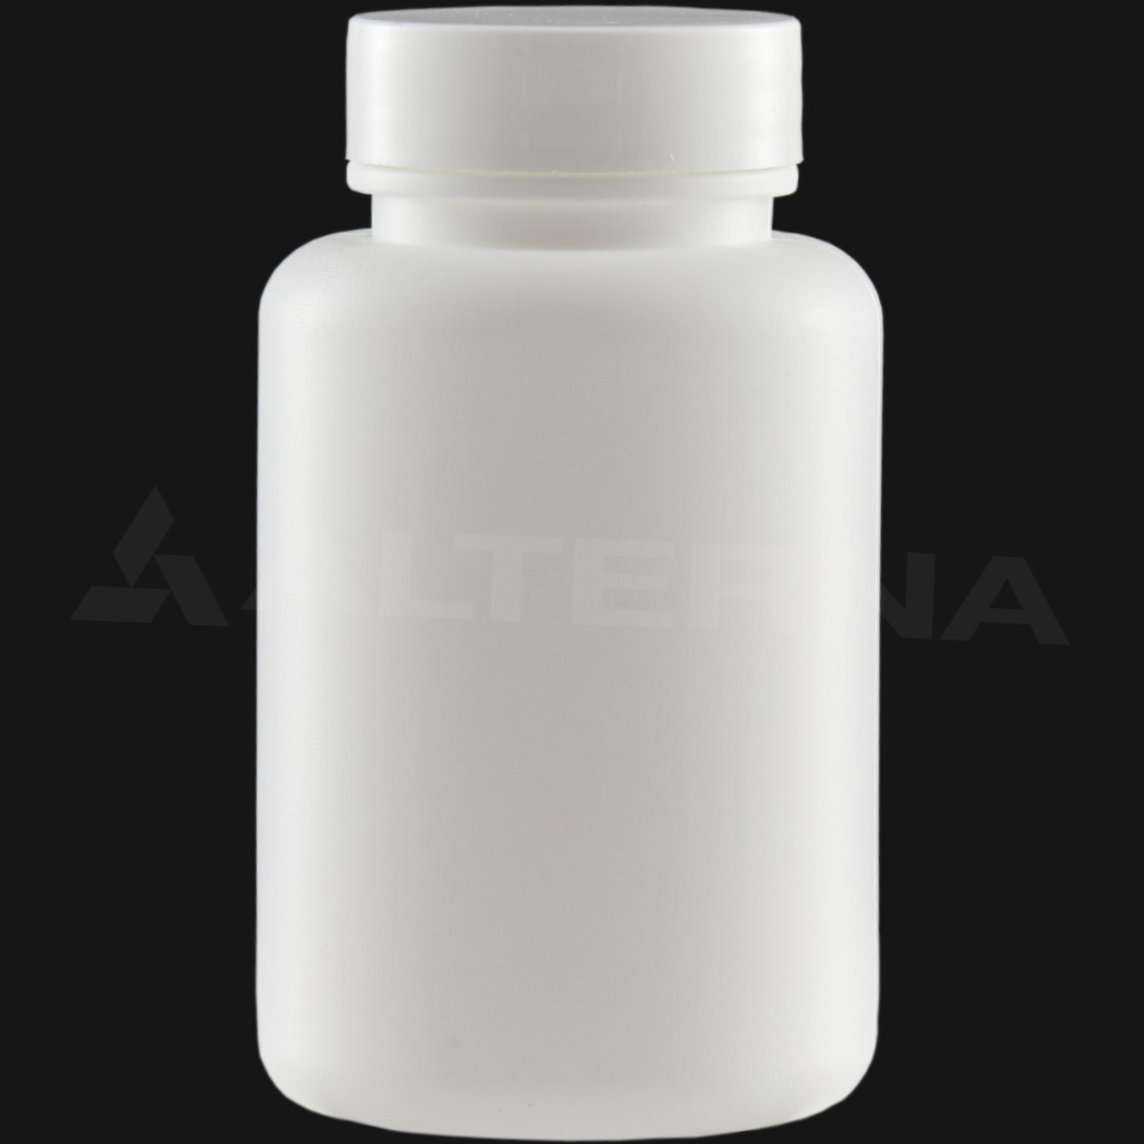 120 ml HDPE Pill Bottle with 38 mm Alu. Foil Seal Cap